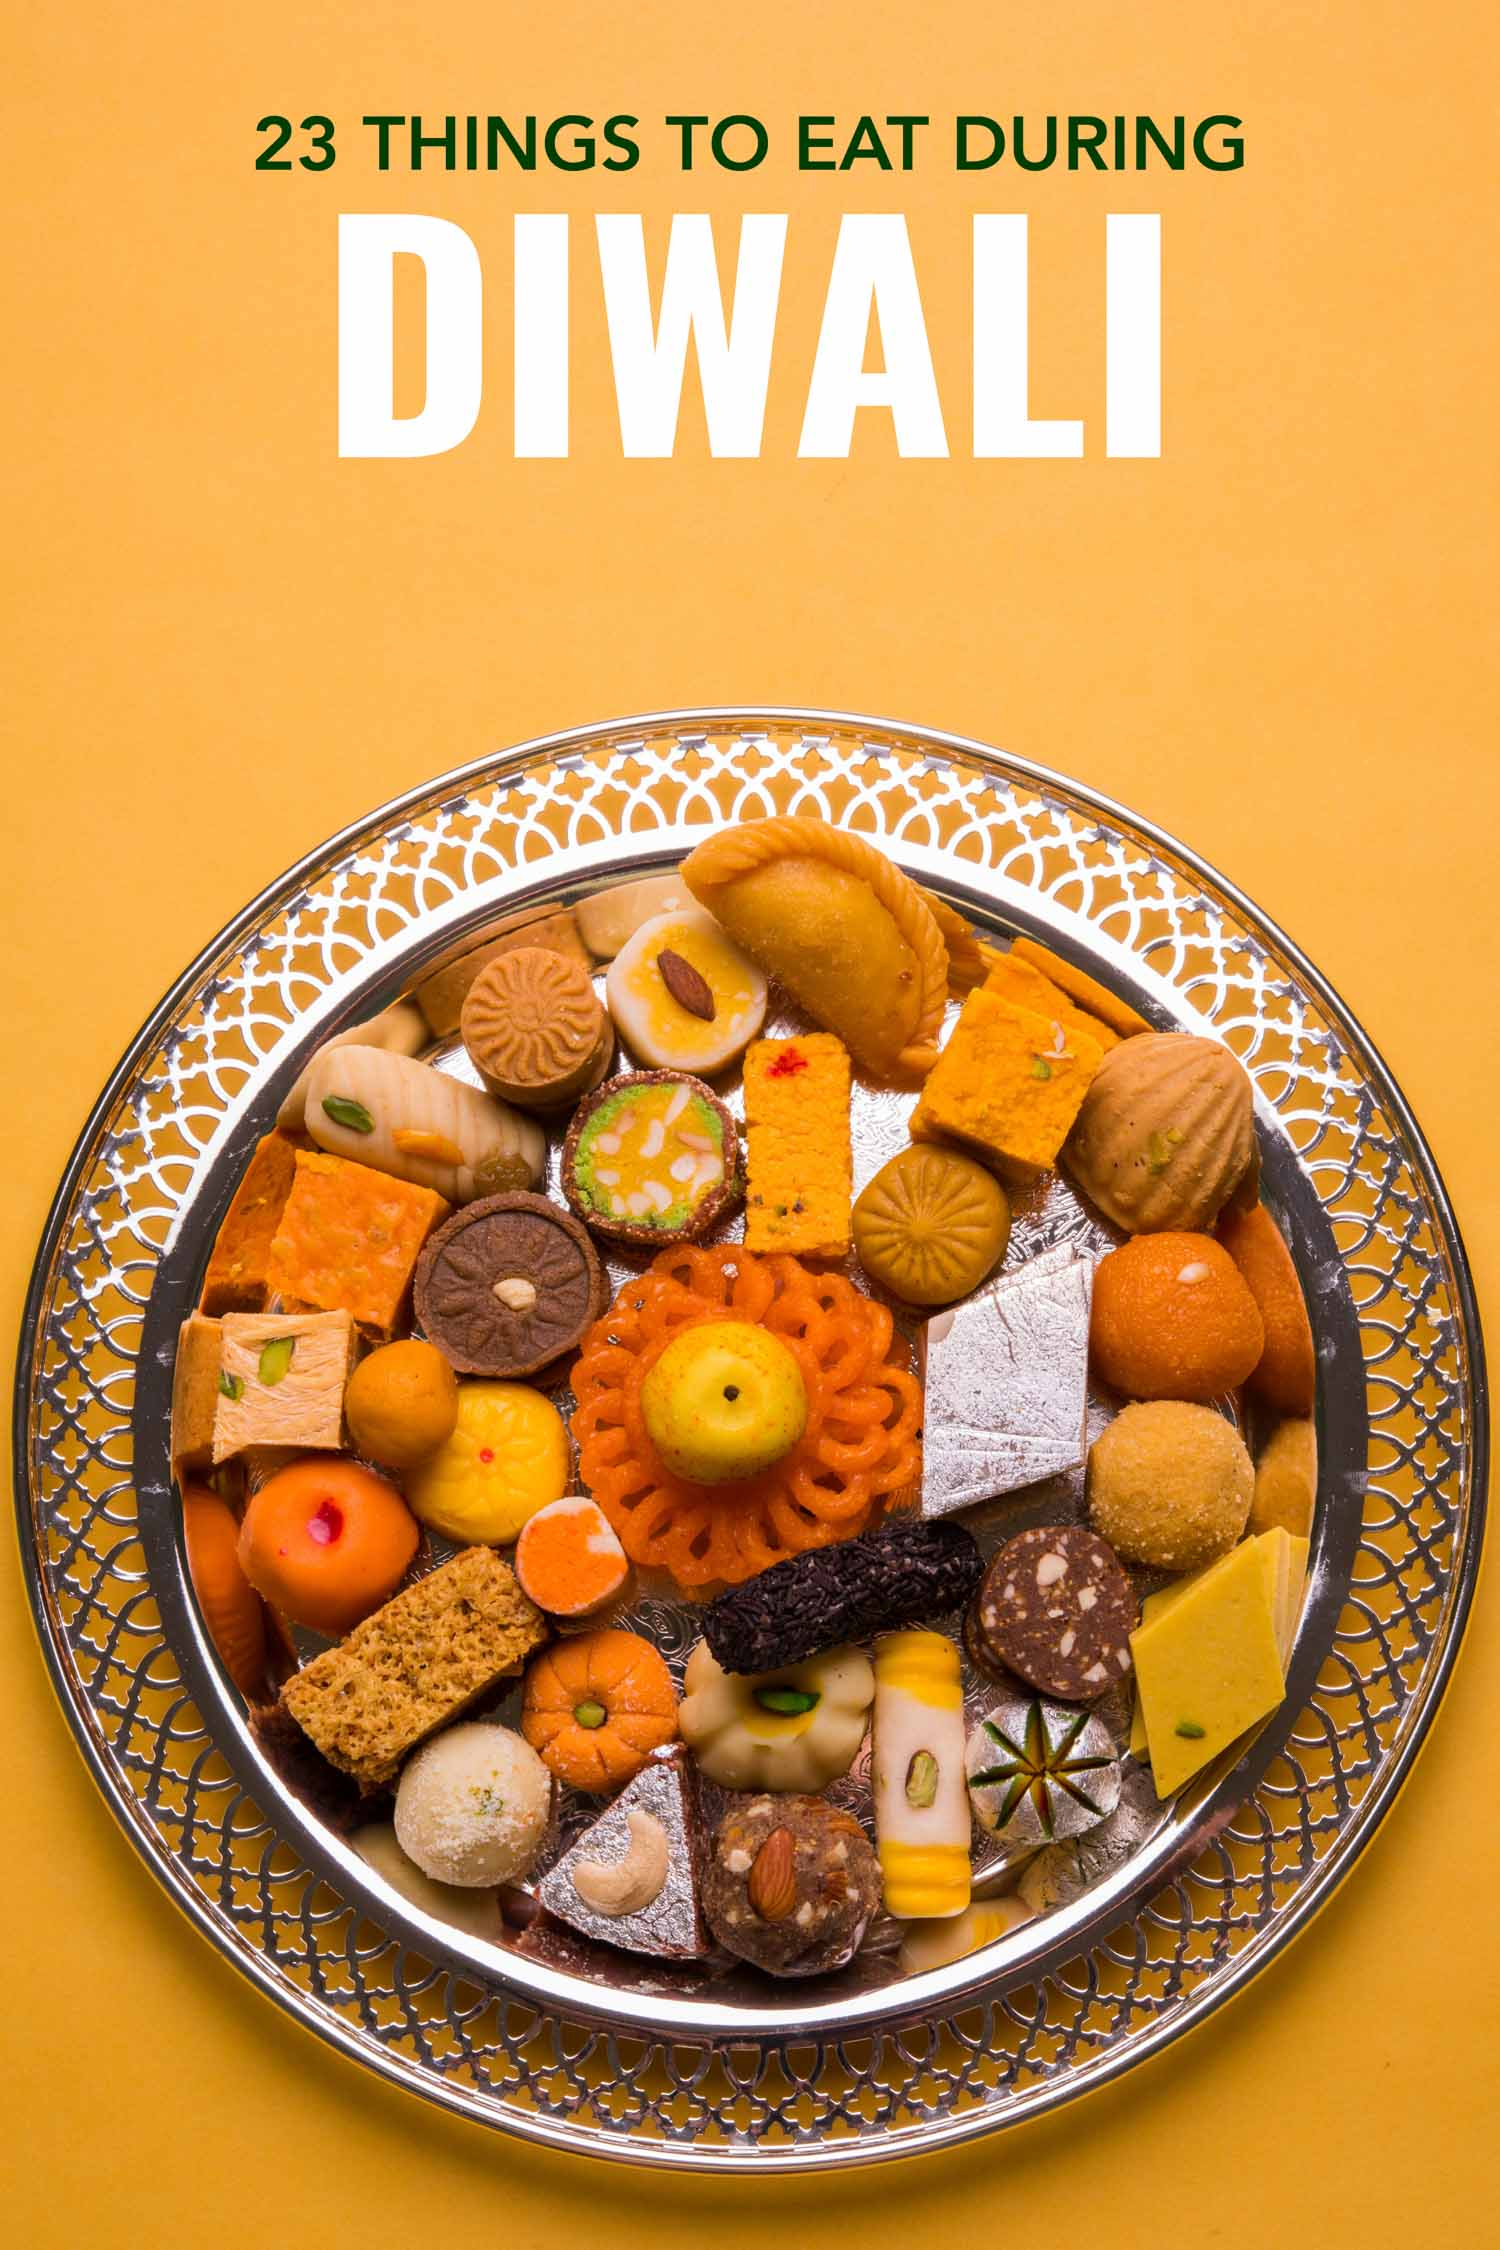 typical Indian sweets at Diwali